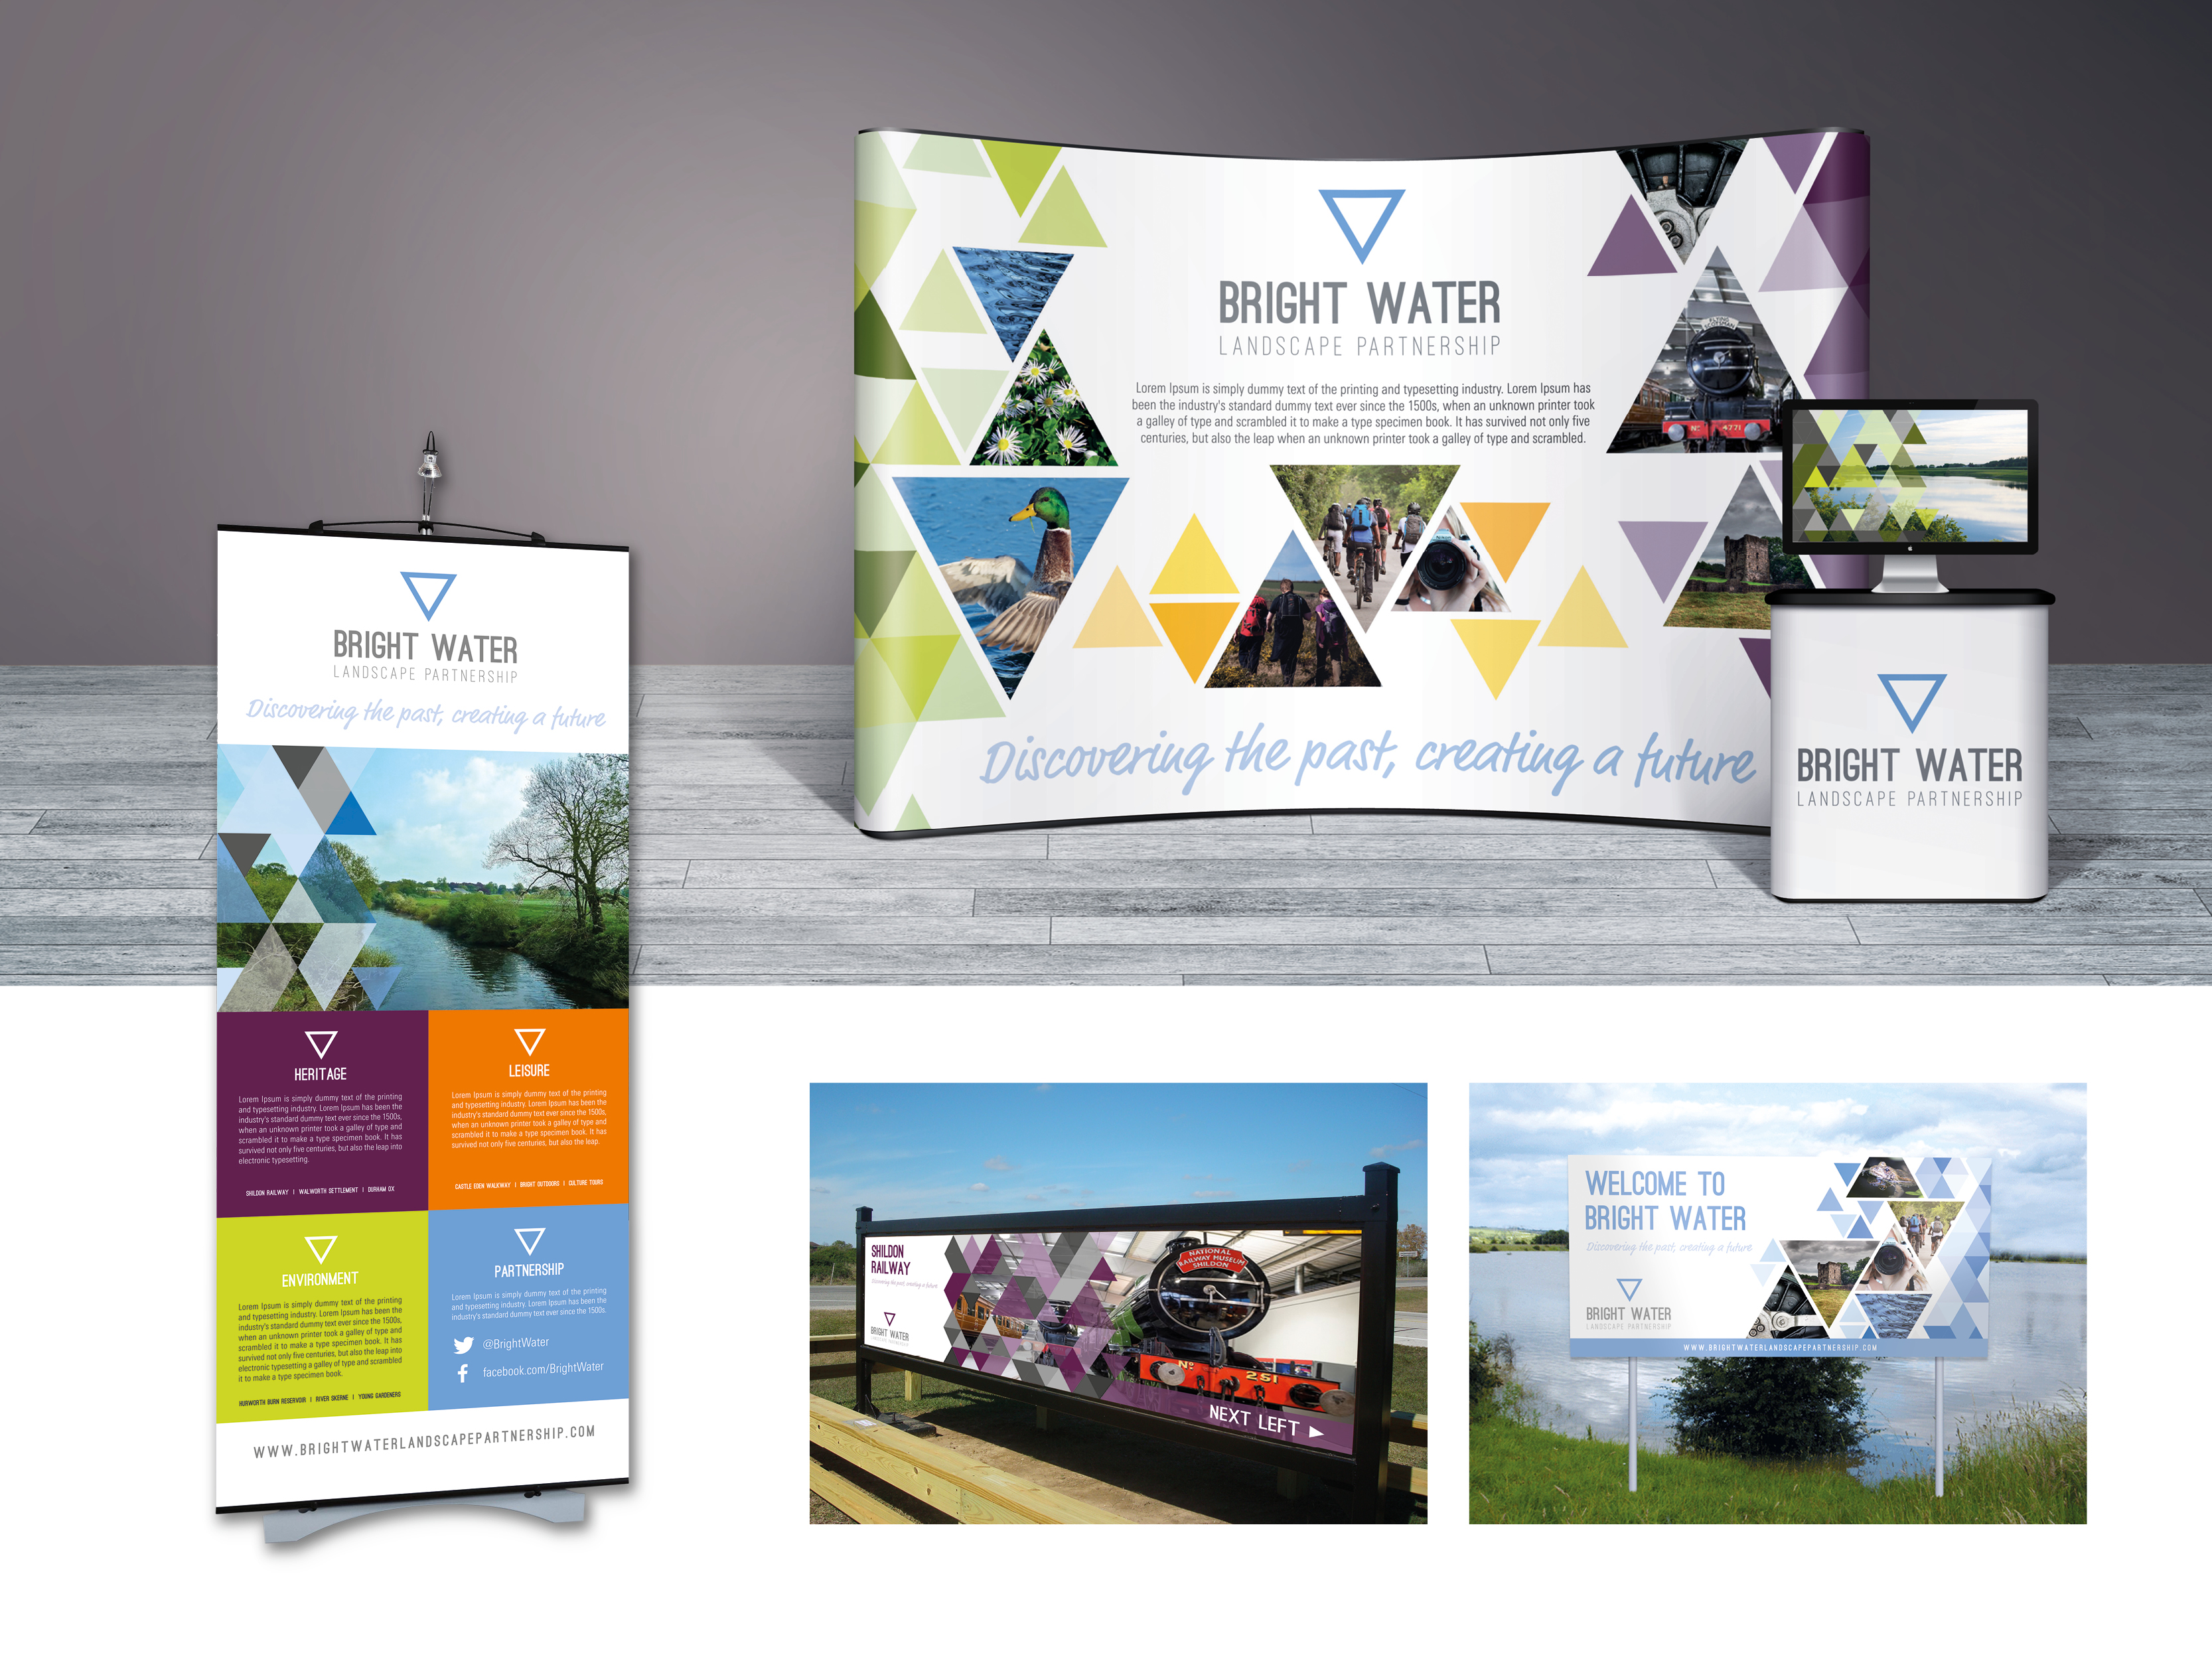 Exhibition and pop up banner designs